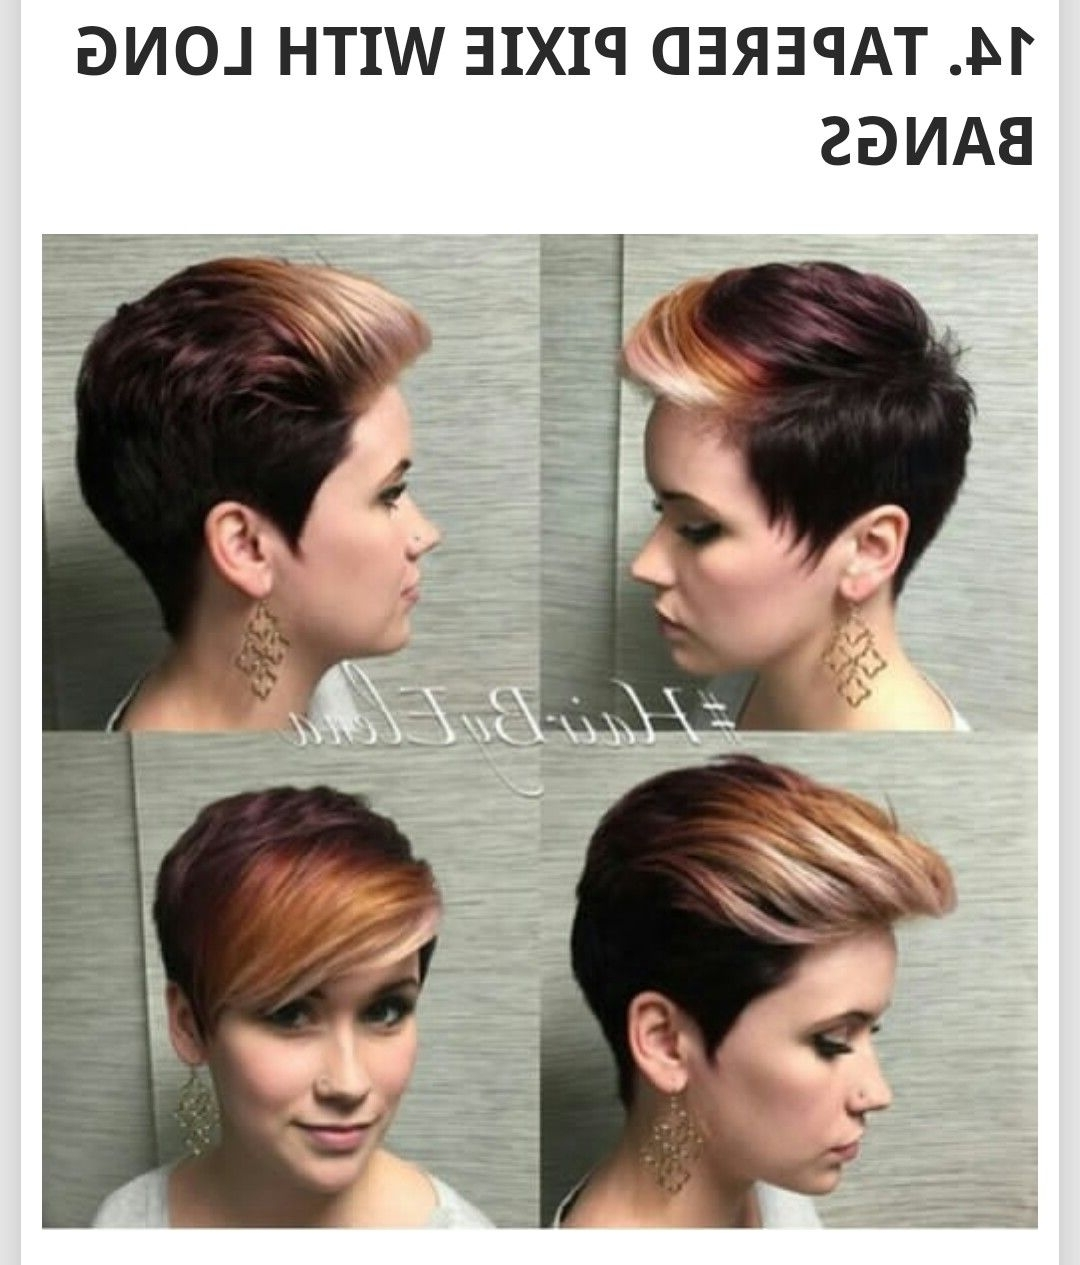 Tapered Pixie With Long Bangs! | Hairstyle And Cuts | Pinterest With Regard To Most Up To Date Tapered Pixie With Maximum Volume (View 5 of 15)